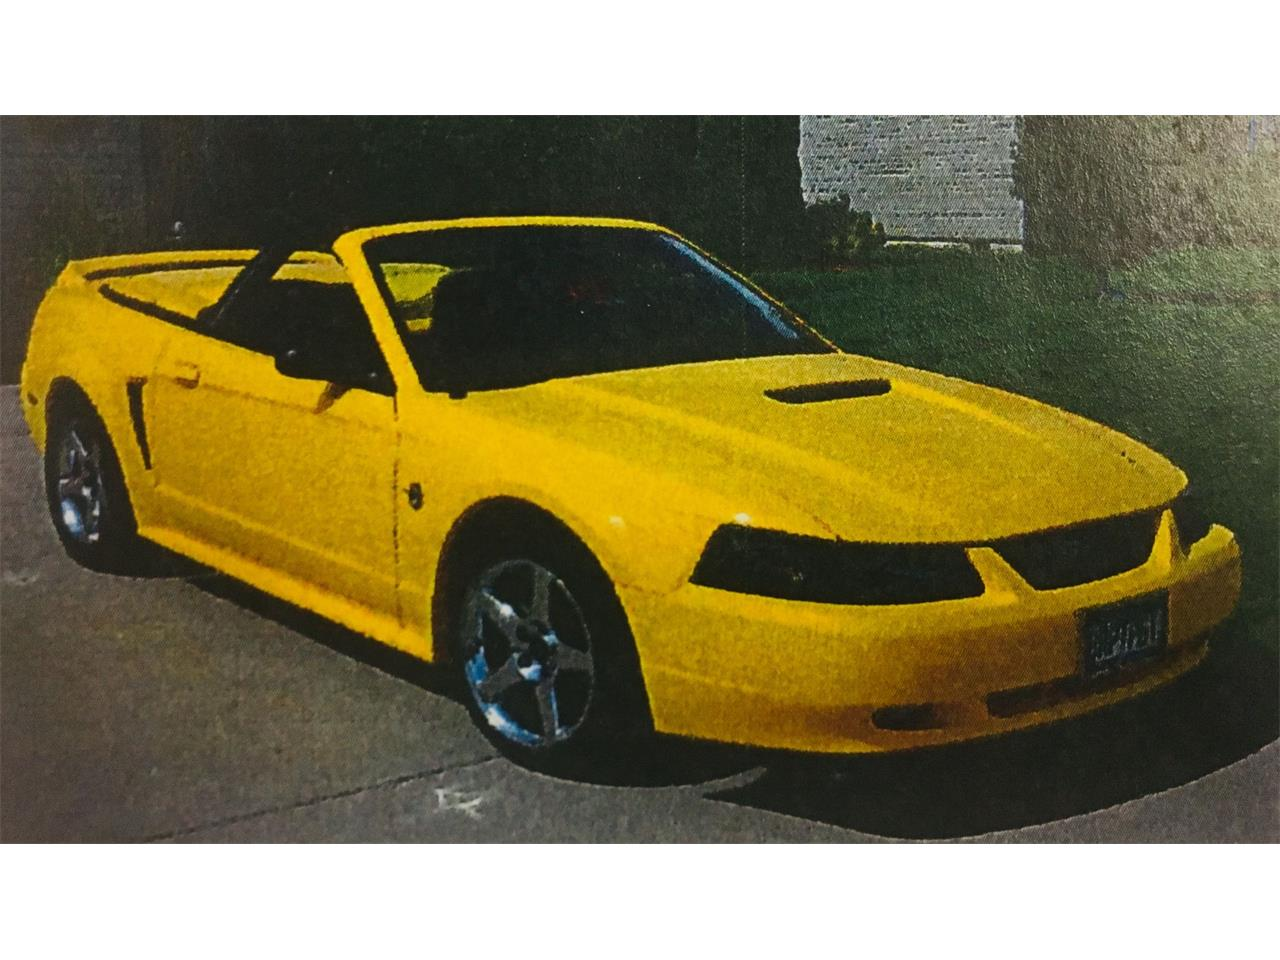 Large picture of 99 mustang oze5